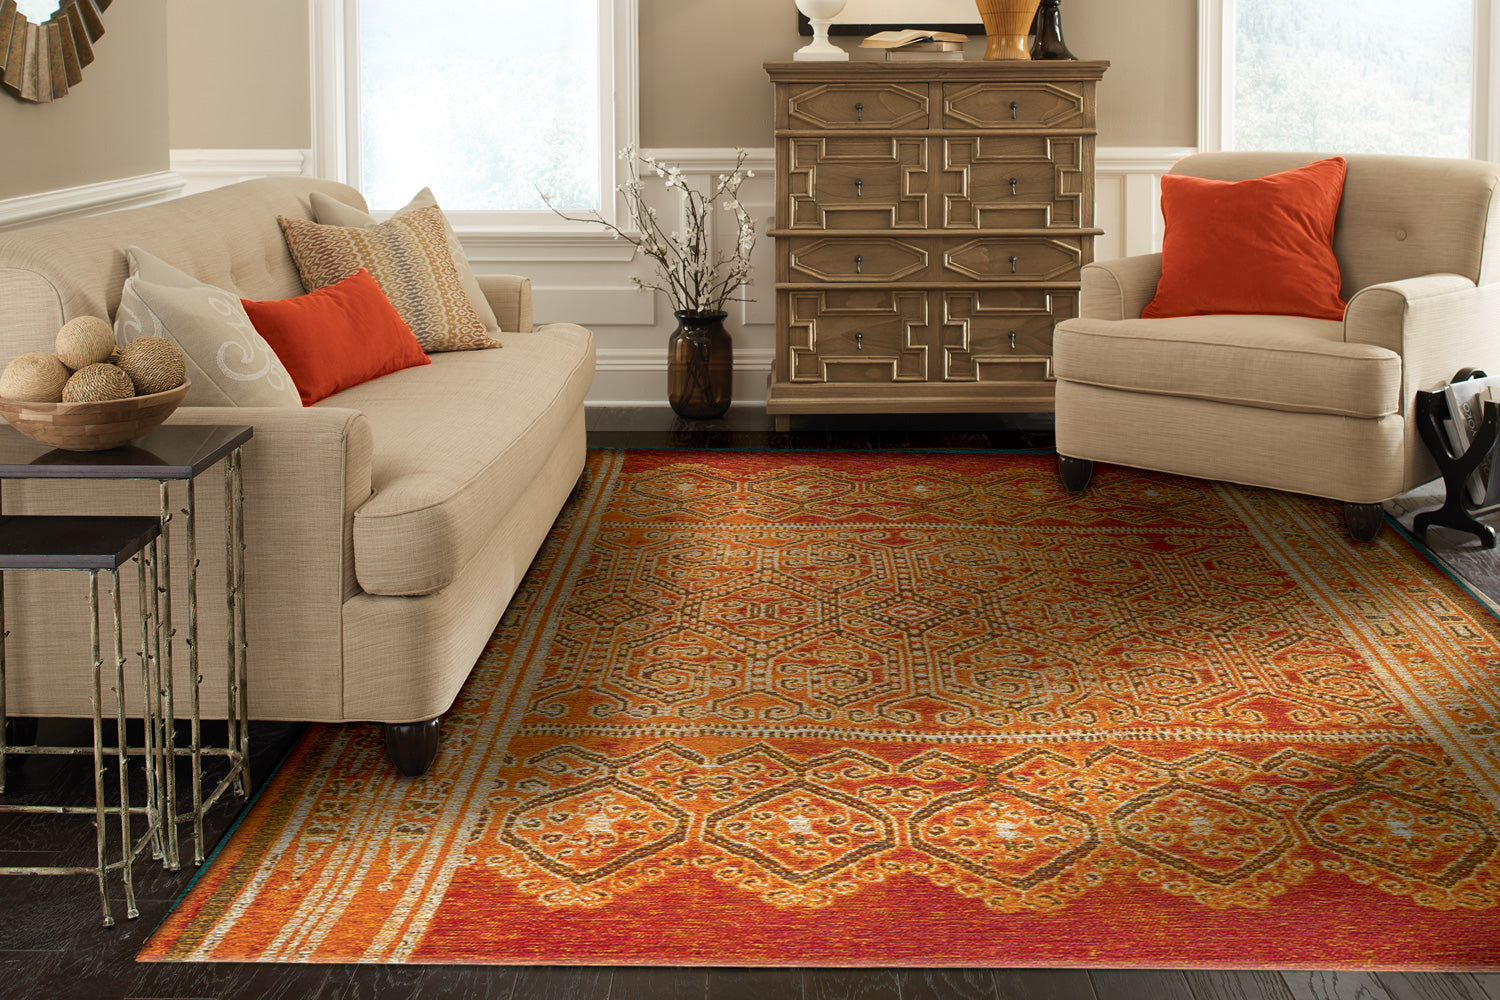 8 Simple Rules to Find The Perfect Colored Rug